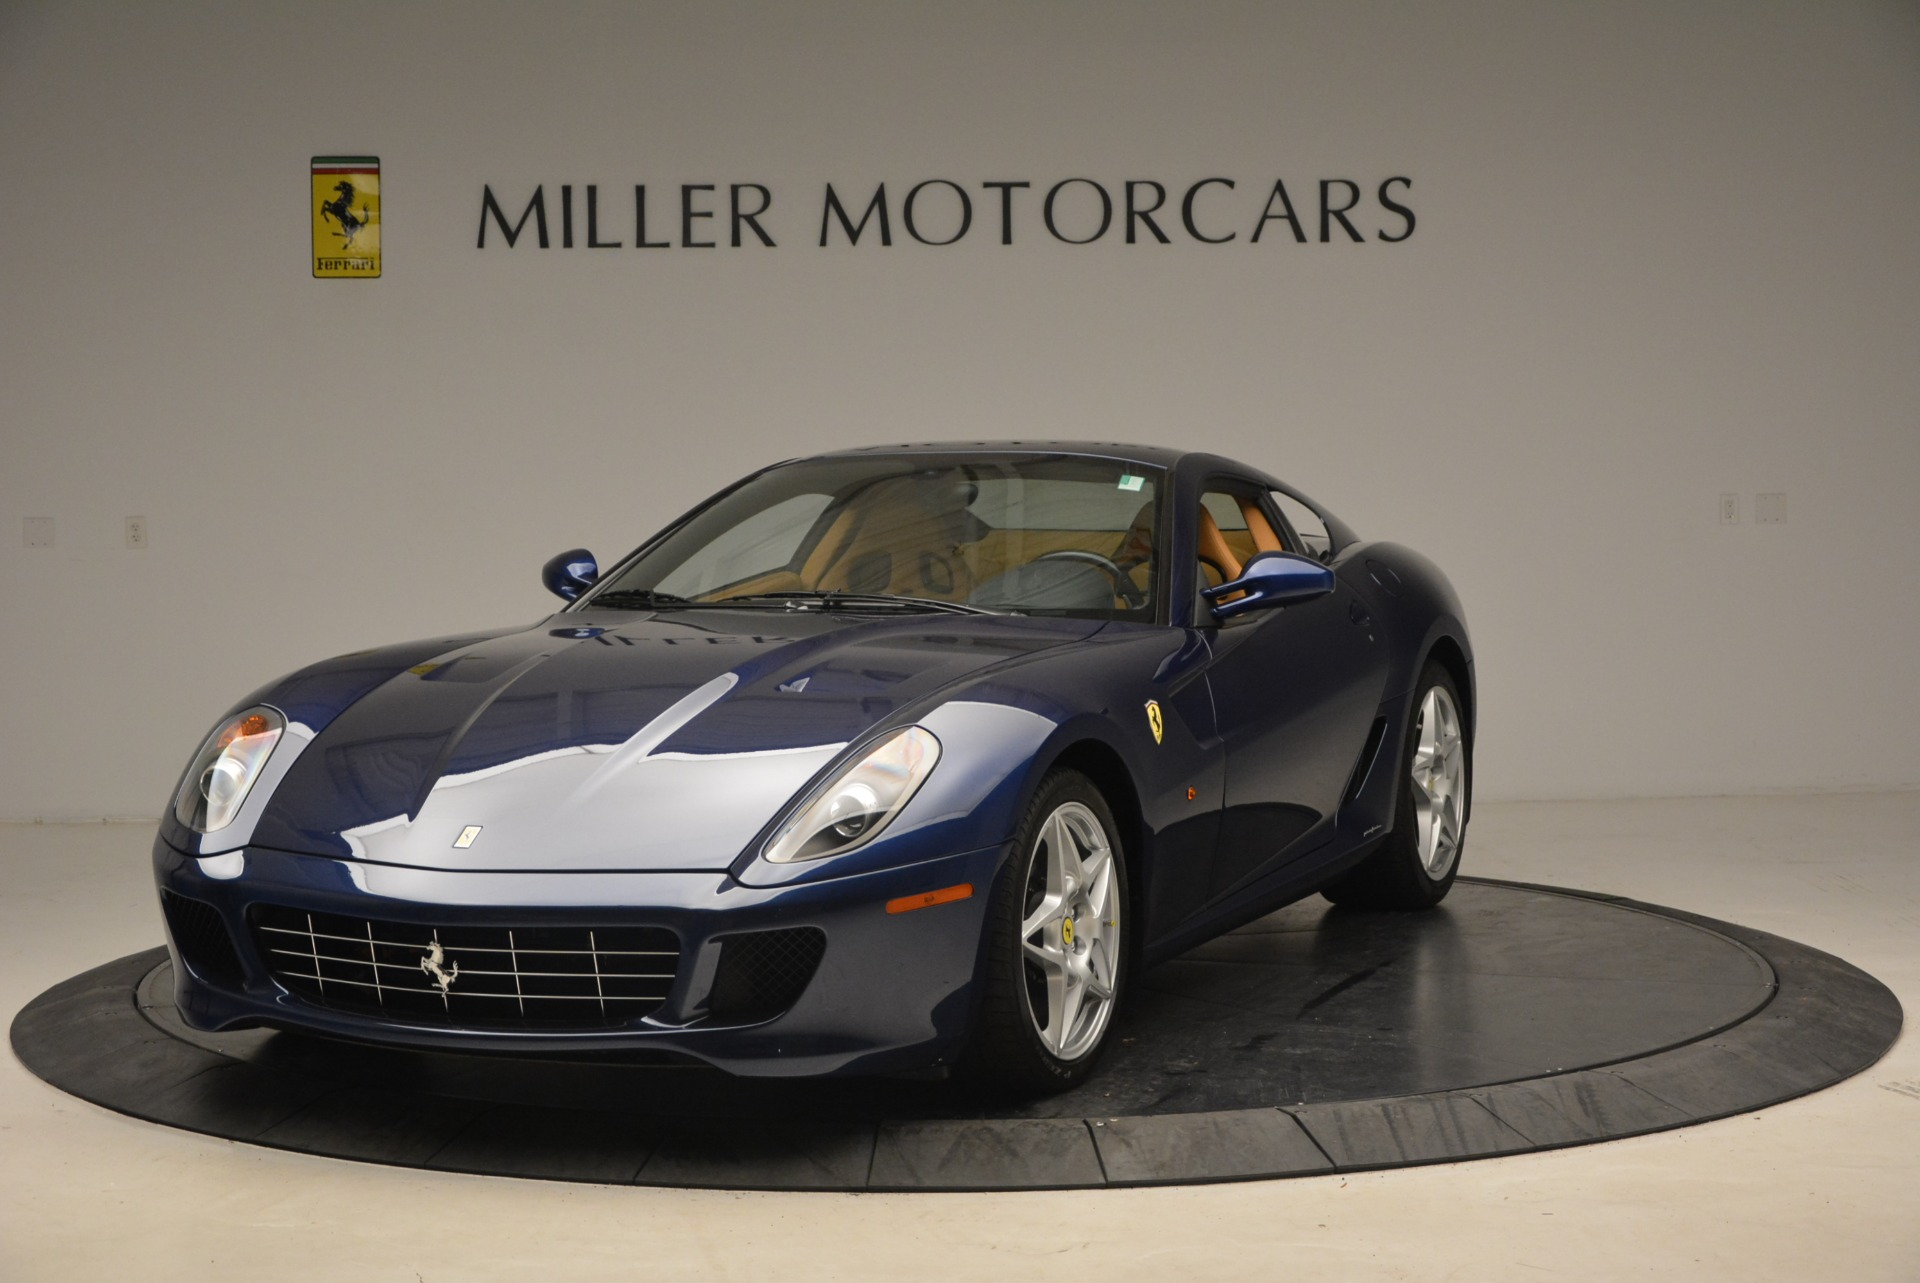 Used 2007 Ferrari 599 GTB Fiorano GTB Fiorano F1 for sale Sold at McLaren Greenwich in Greenwich CT 06830 1